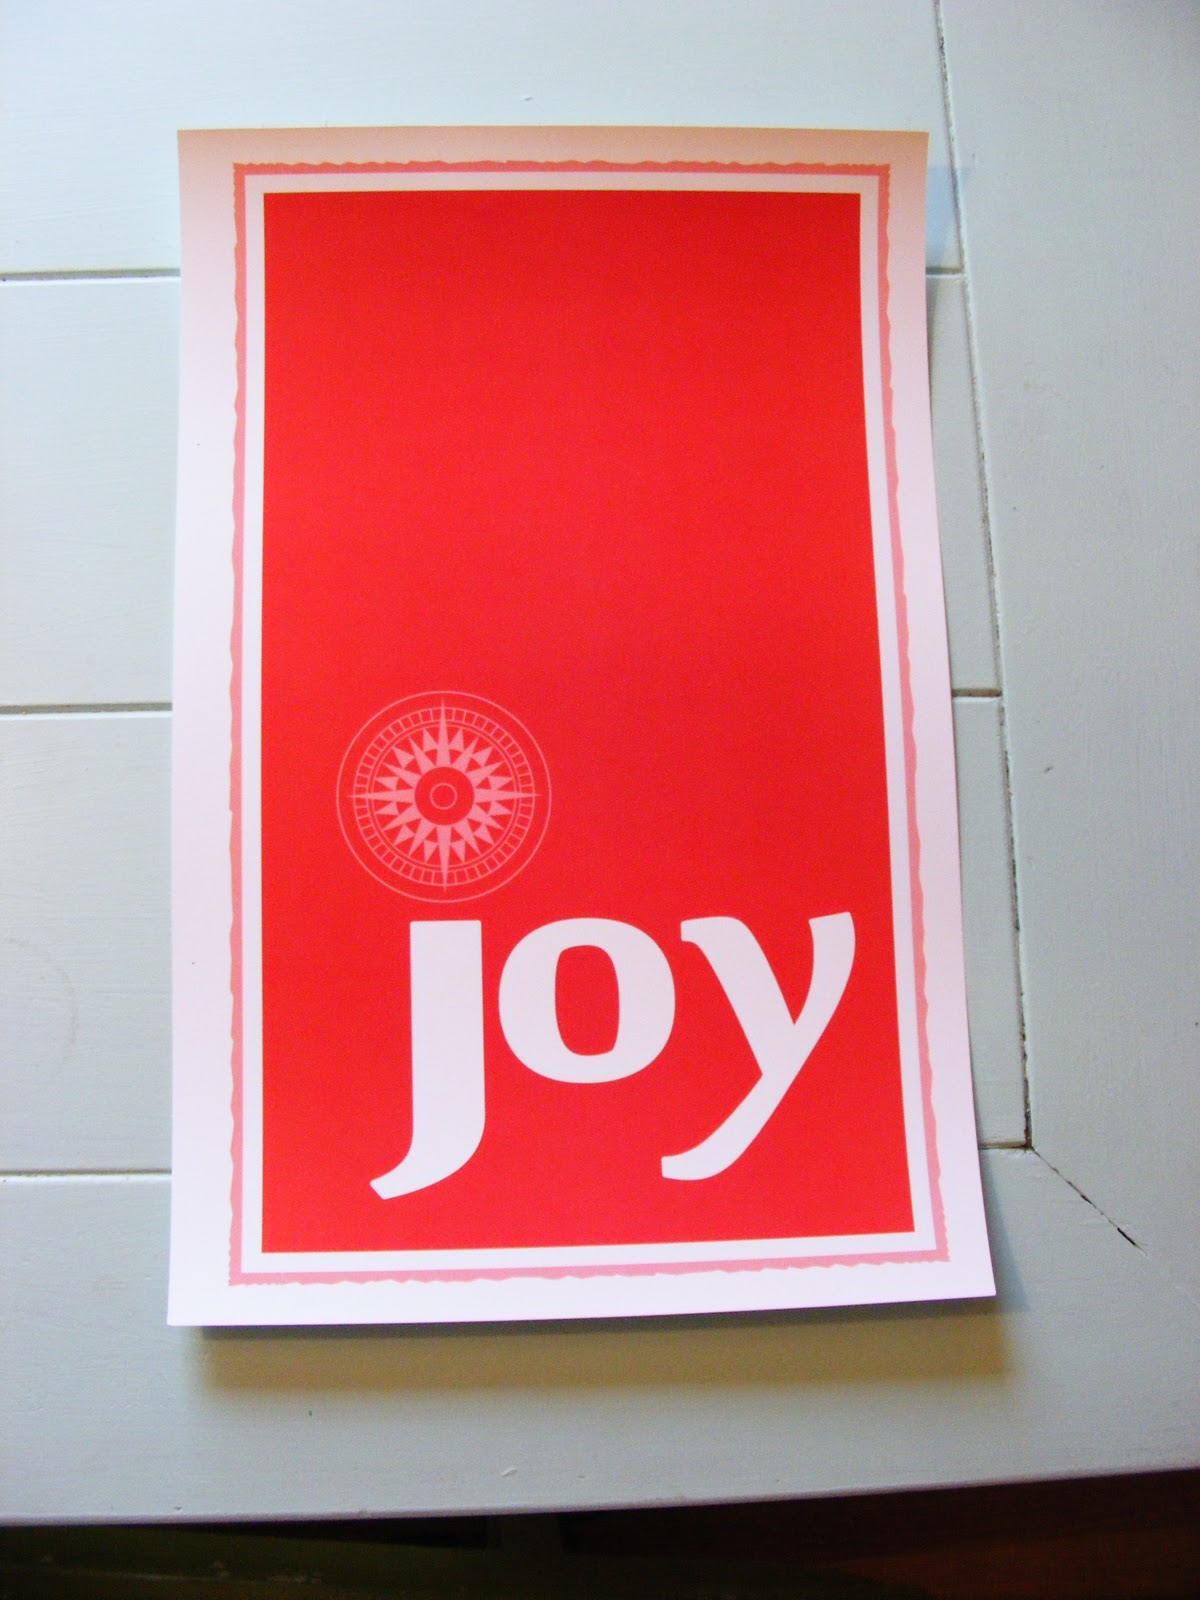 For the FEP: Jolly Goode Posters